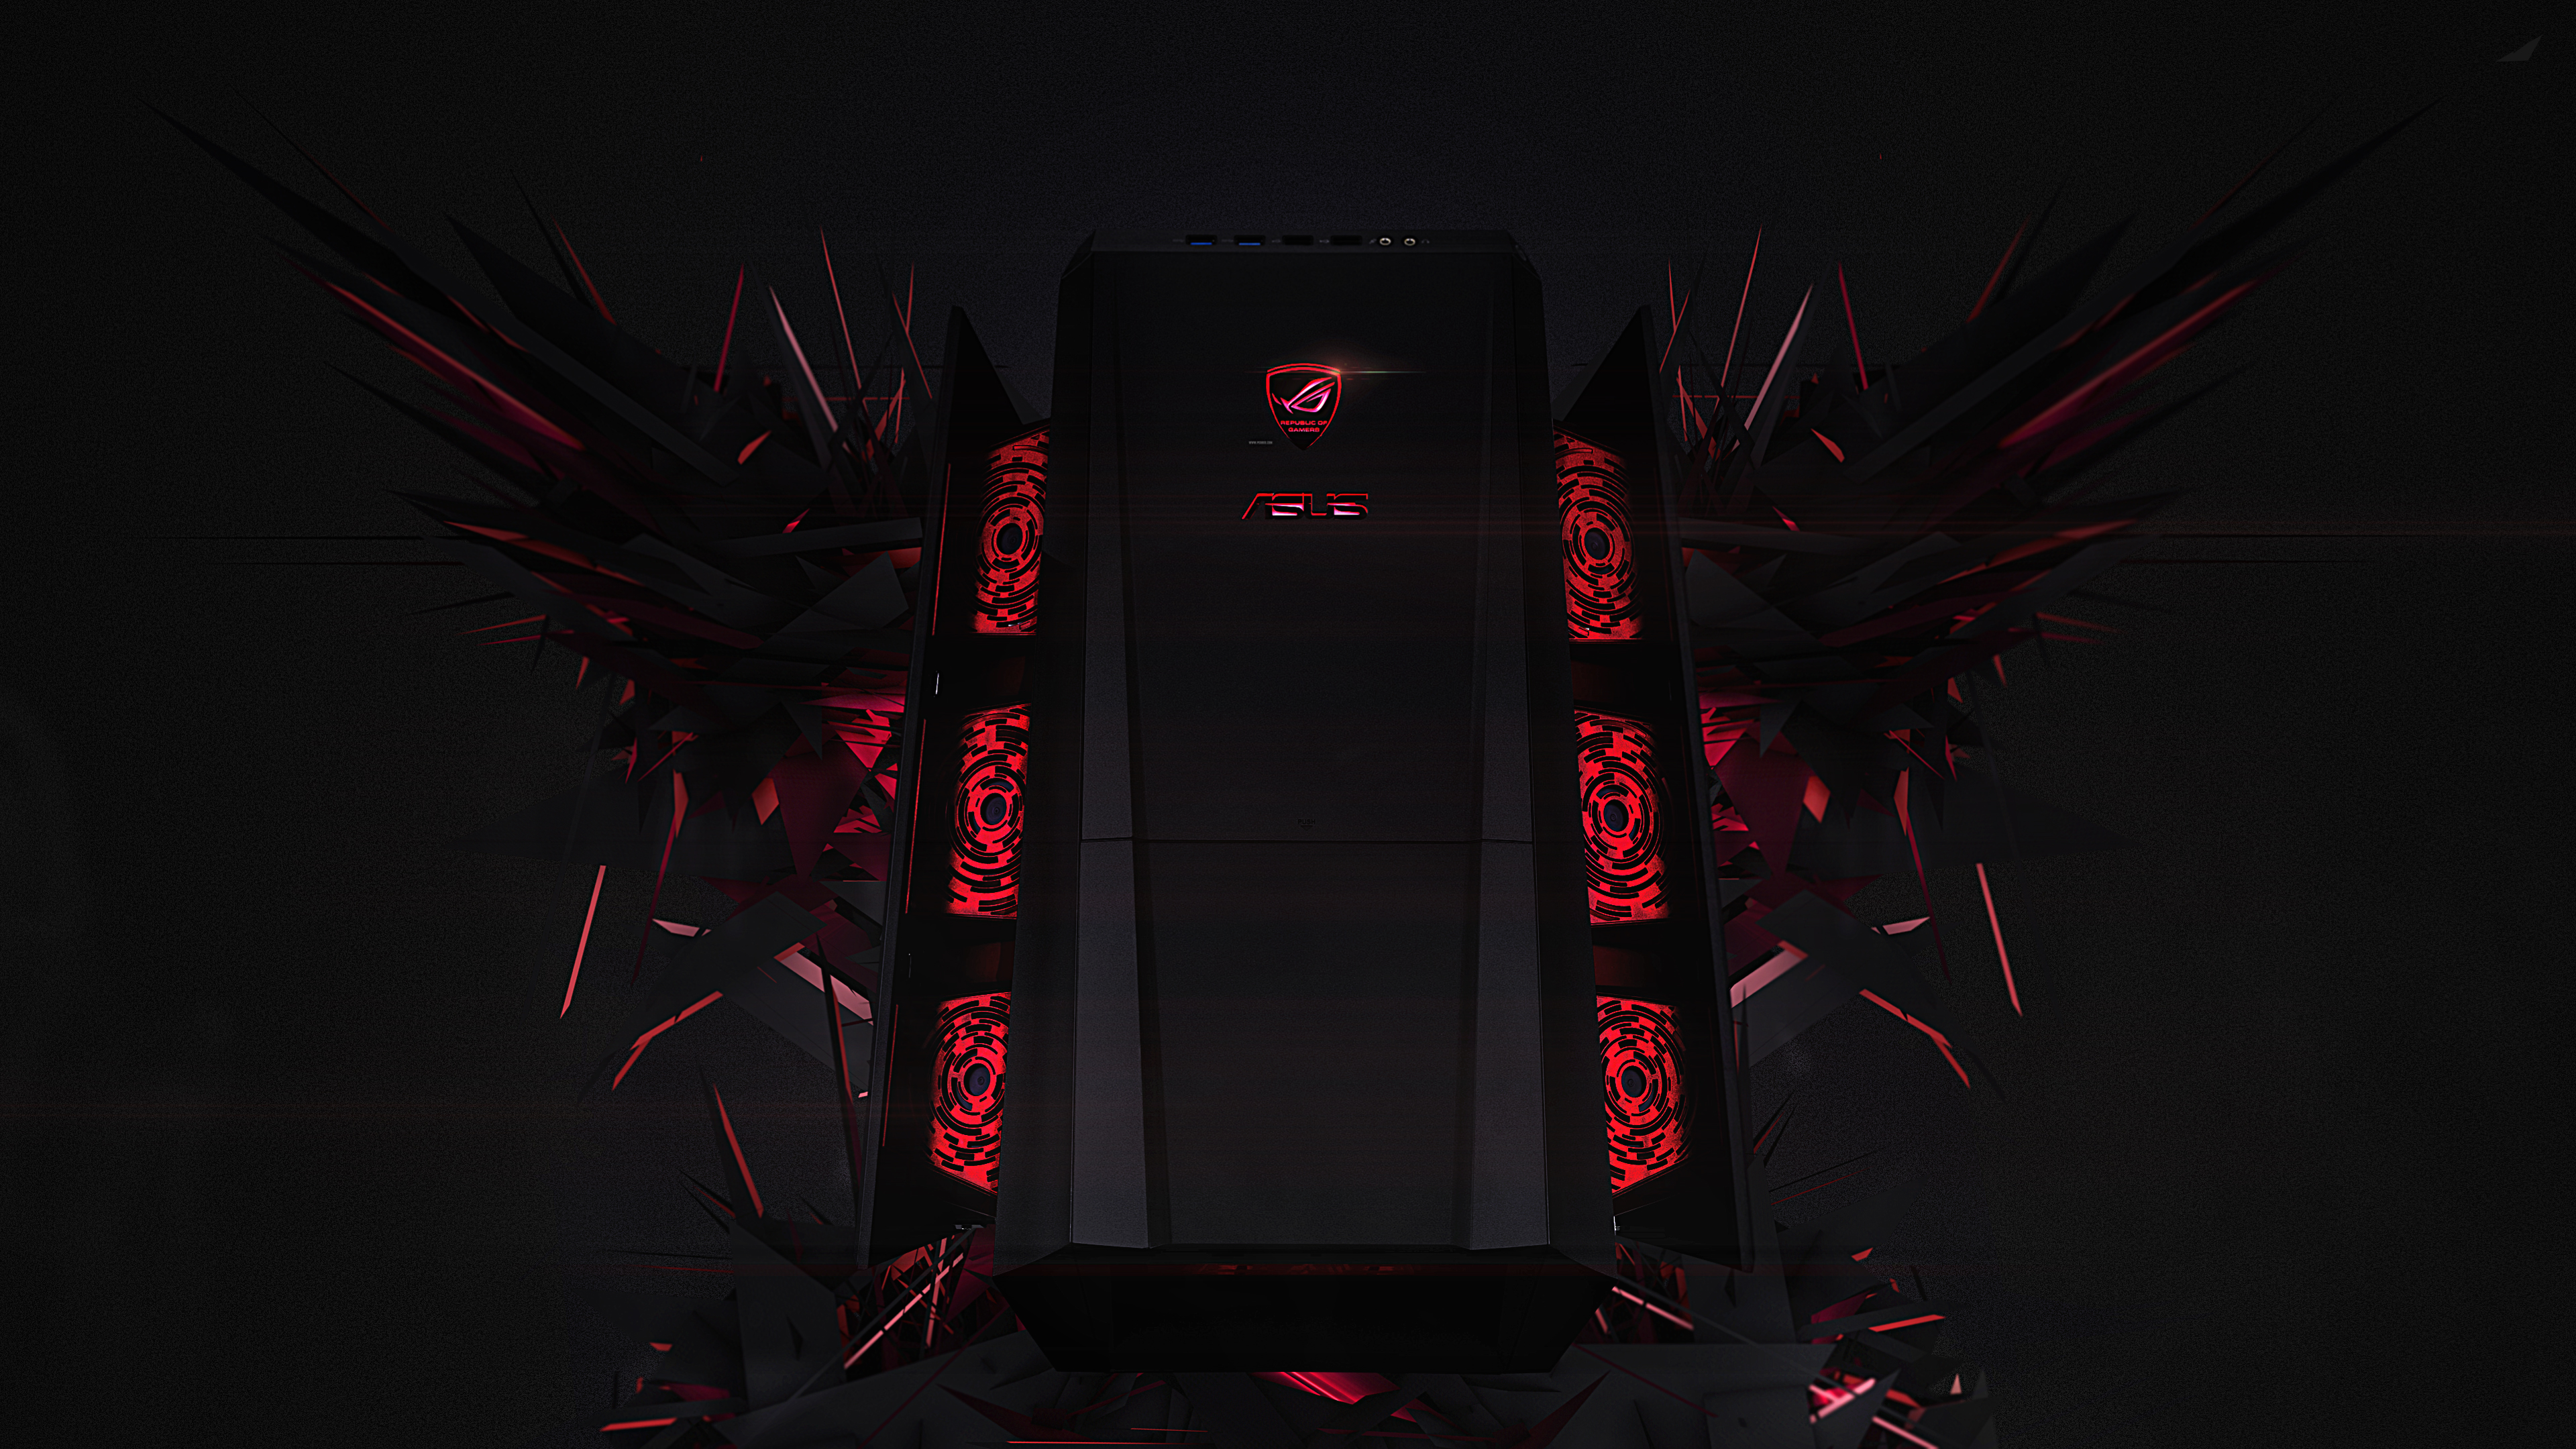 4k wallpapers pcmasterrace